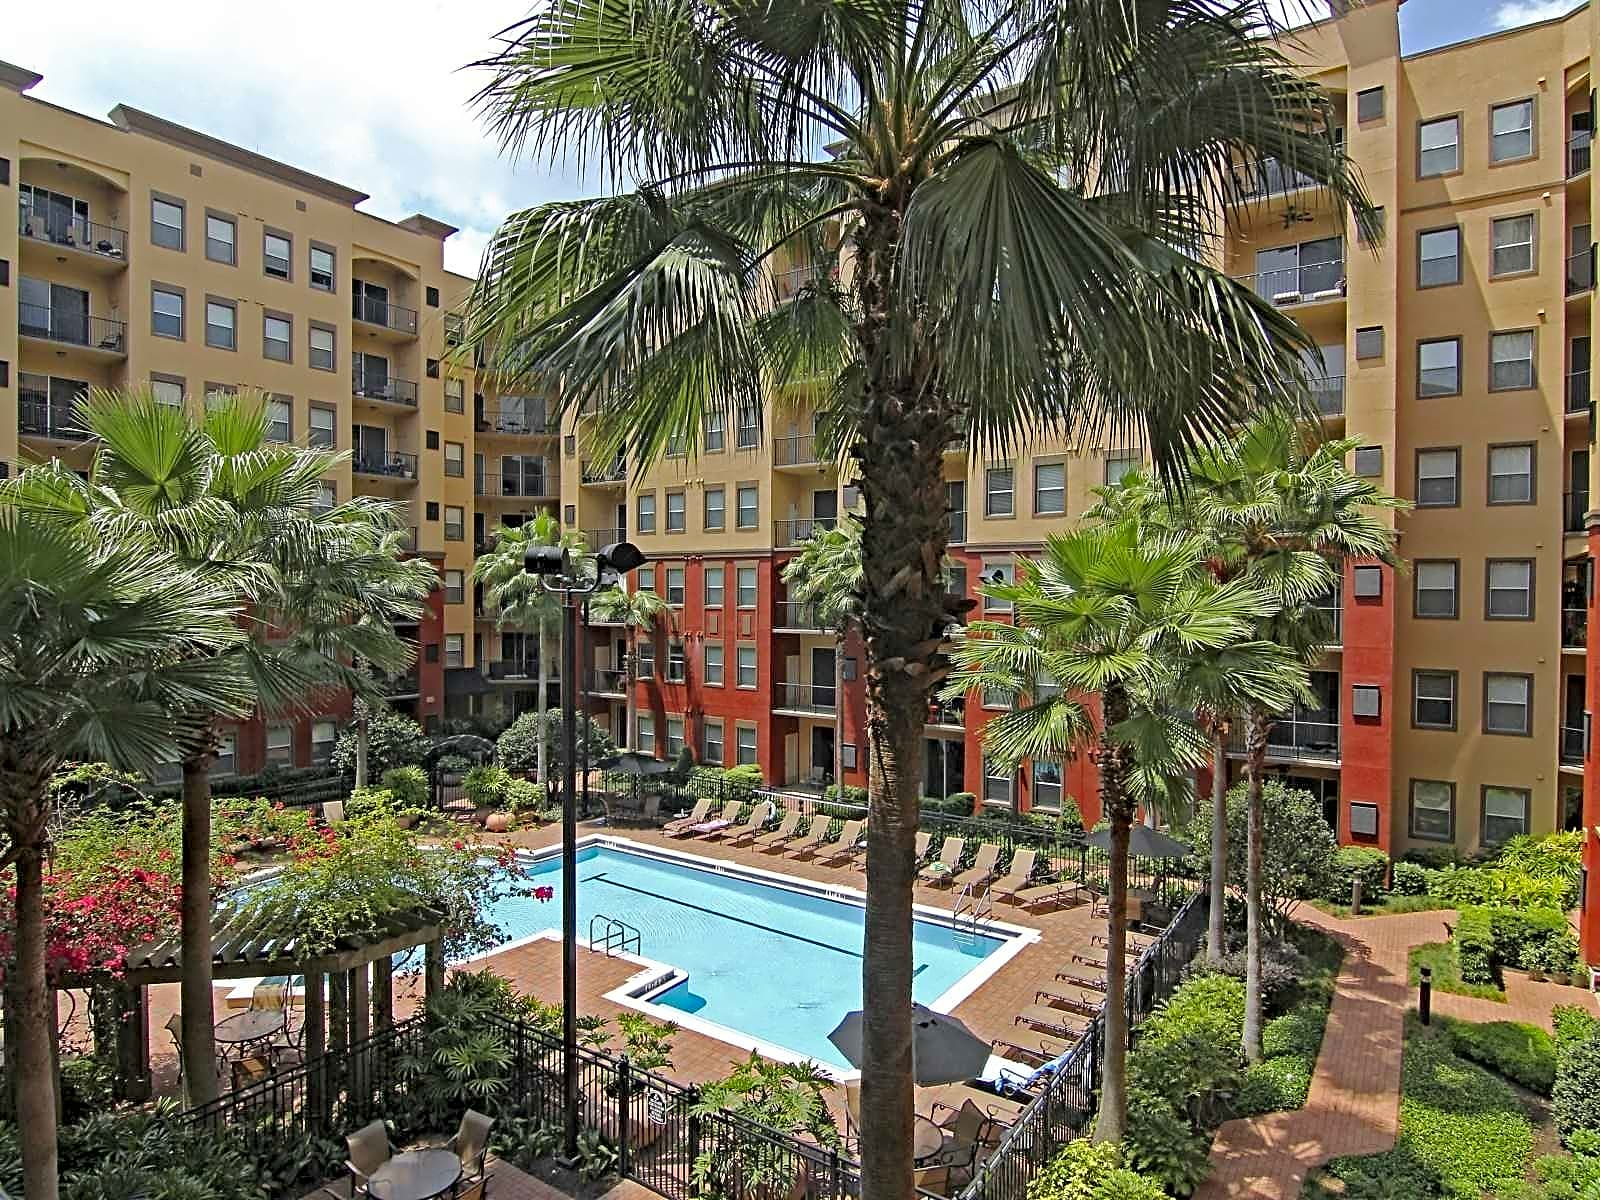 The Lofts At Uptown Altamonte for rent in Altamonte Springs